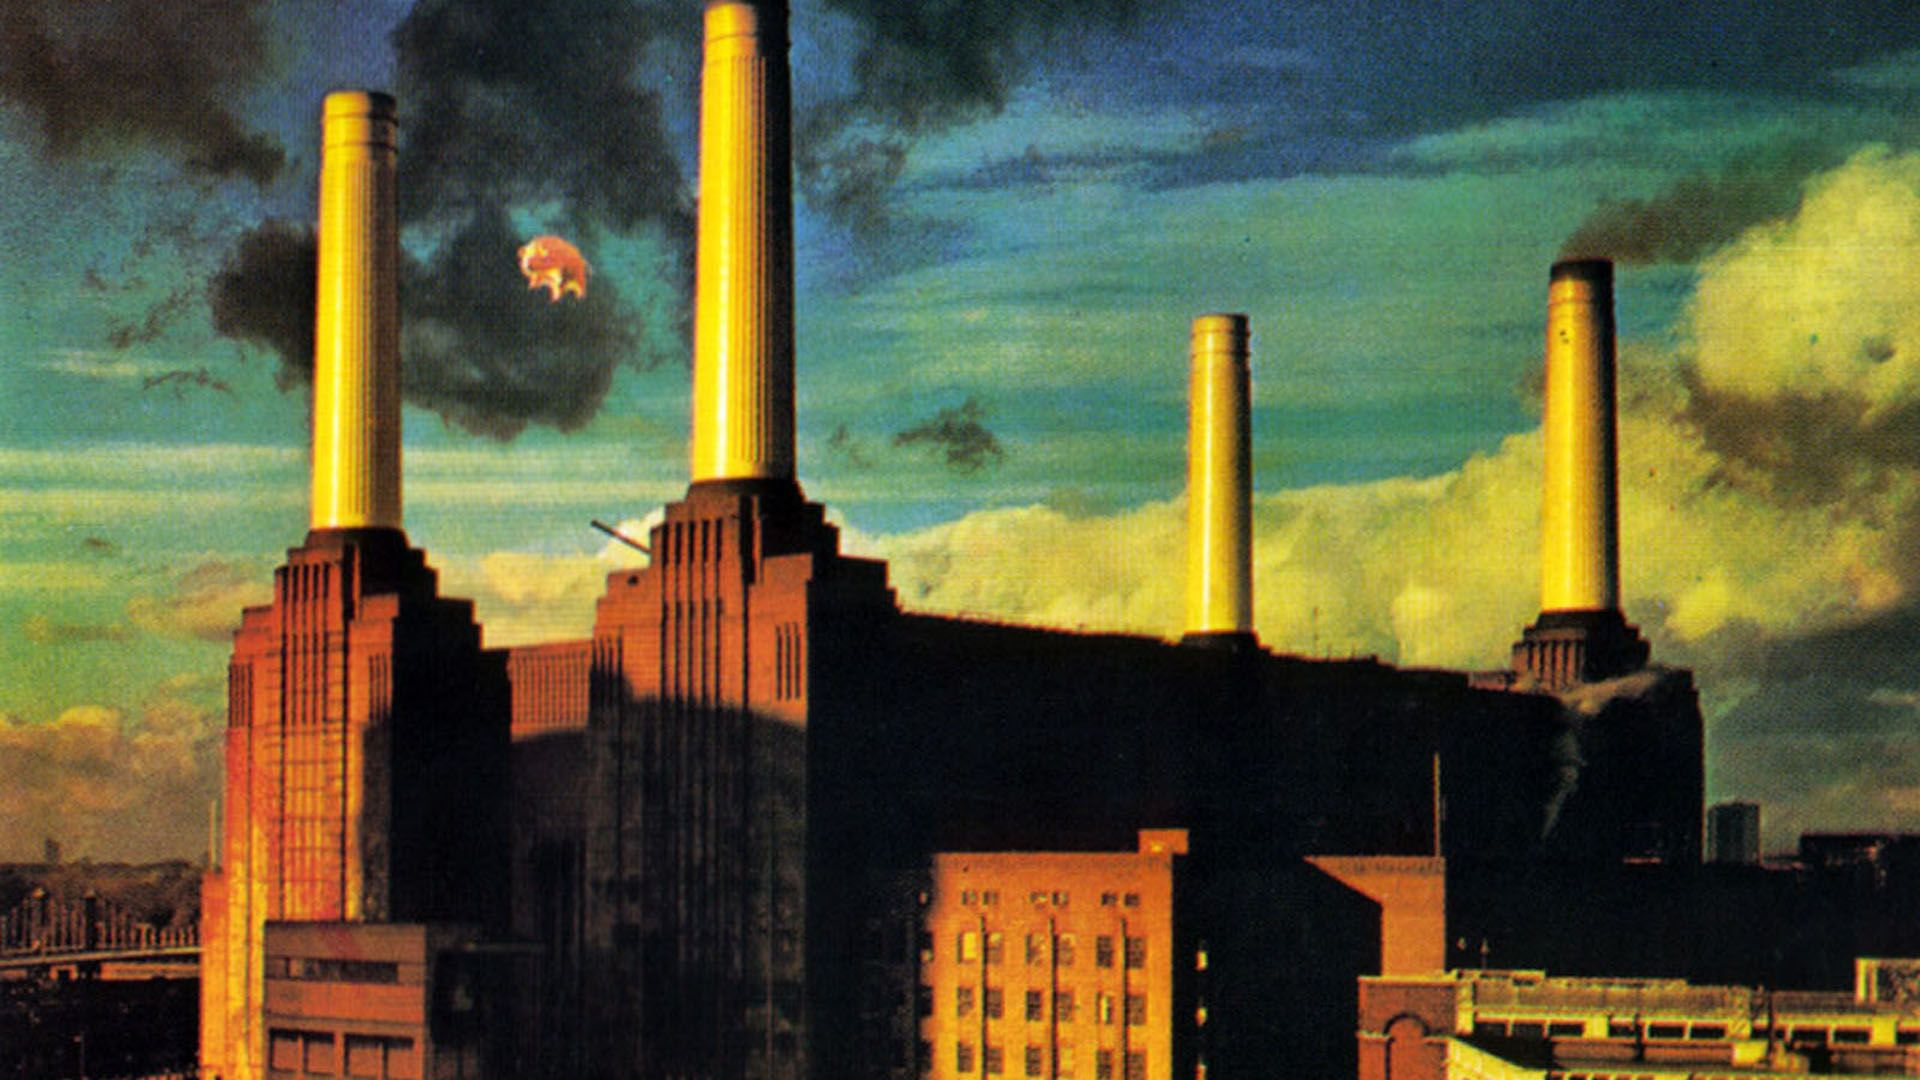 Pink Floyd Wallpapers Pink Floyd Backgrounds for PC 1920x1080